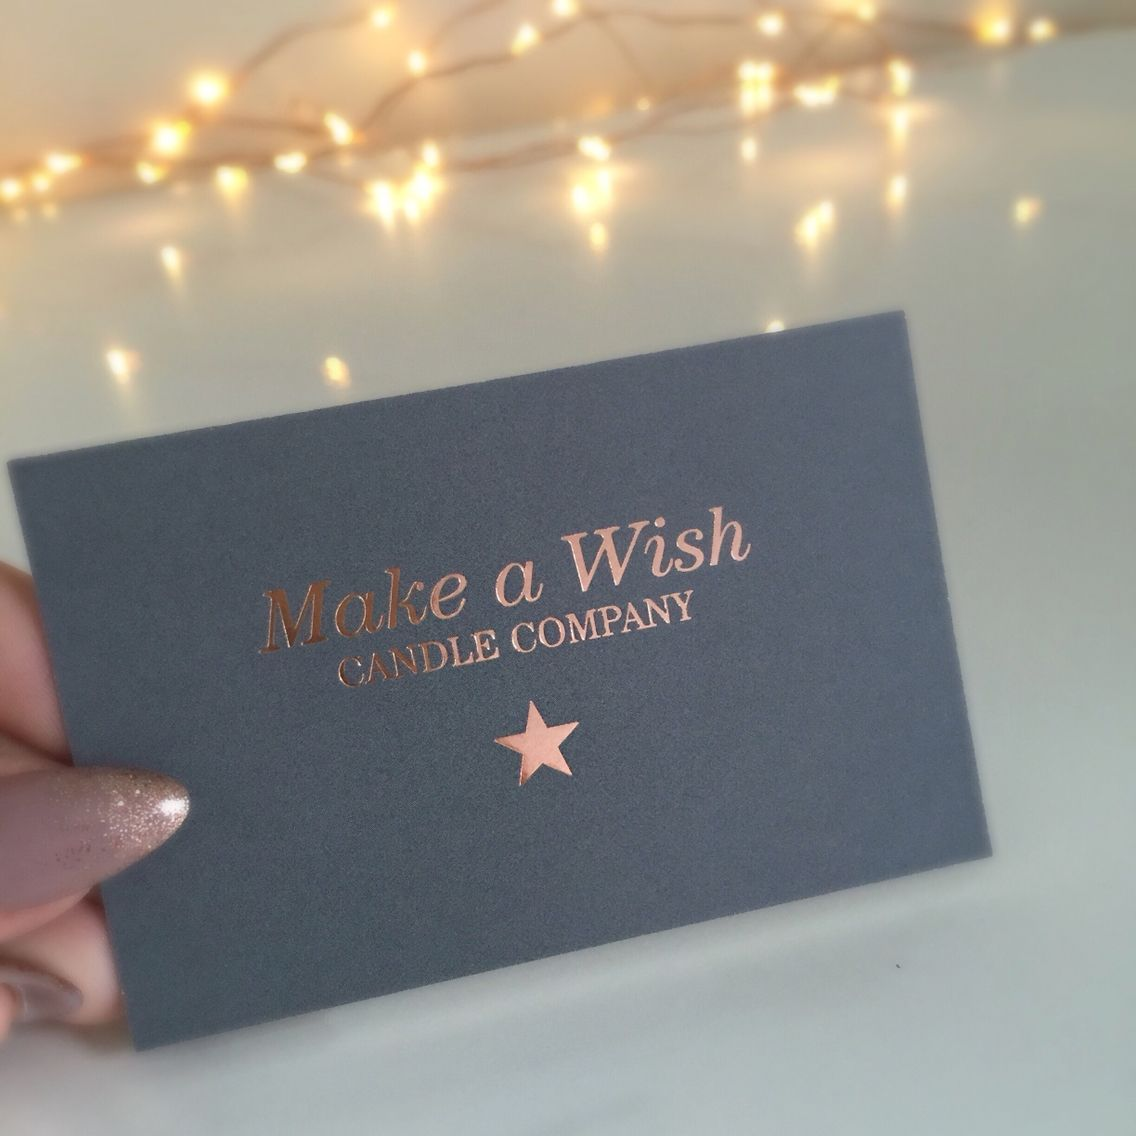 Our new business cards business businesscards design rosegold our new business cards business businesscards design rosegold grey star candle businessdesign pretty fairylights makeawish colourmoves